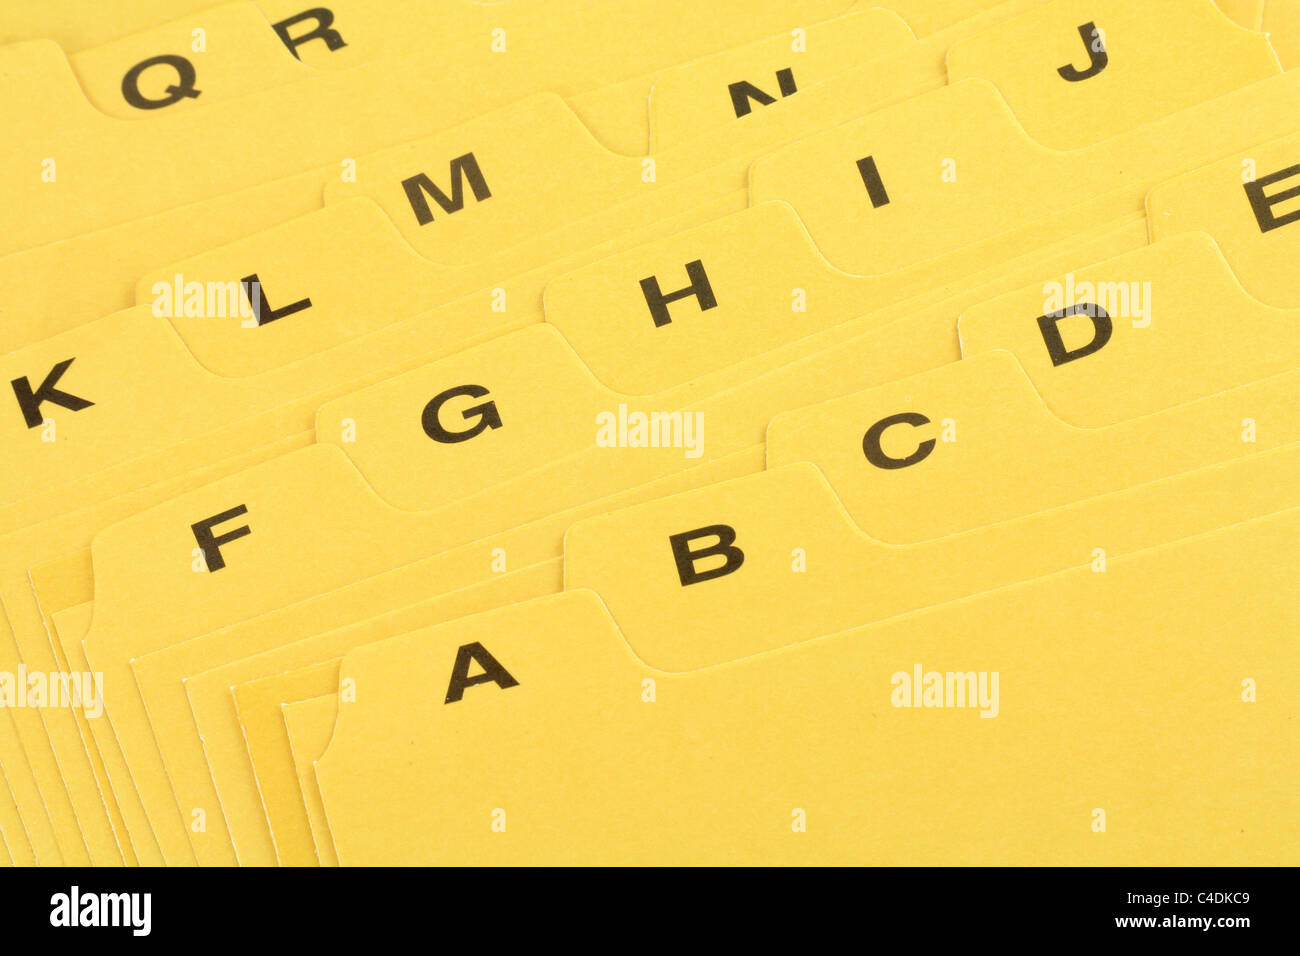 file divider, office supplies, close up - Stock Image